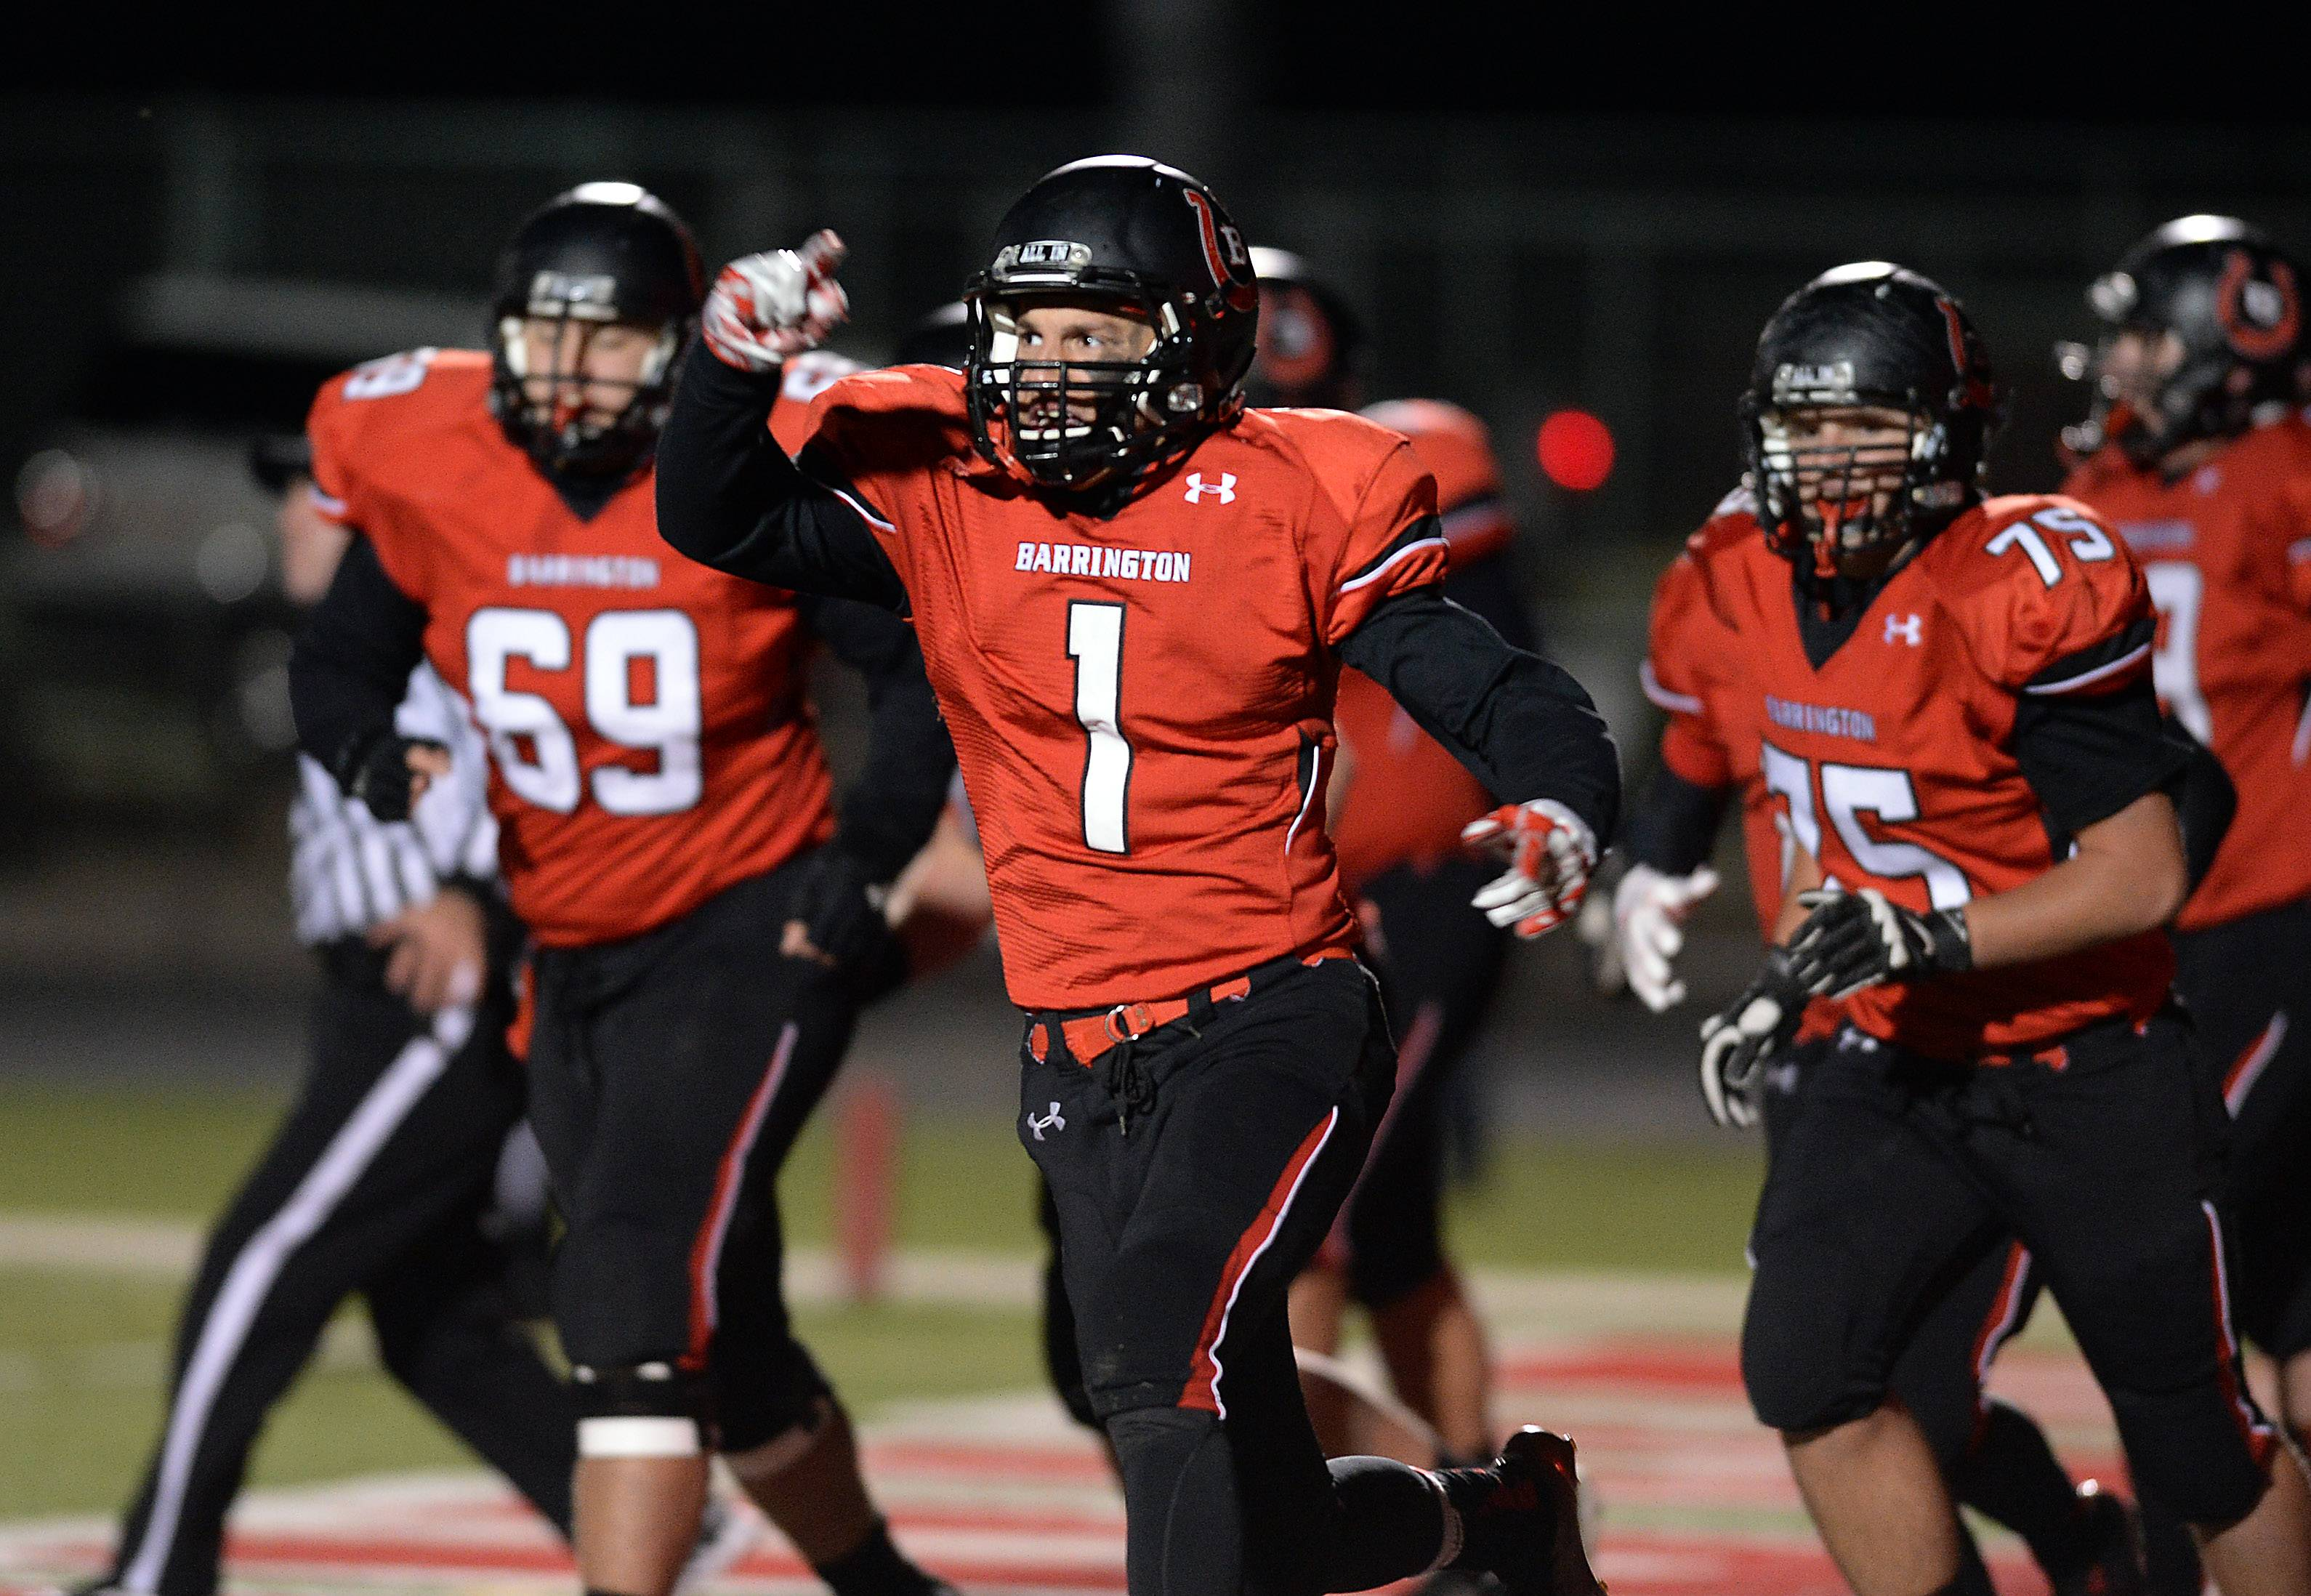 Barrington's Scotty Miller celebrates his first-half touchdown against Oak Park-River Forest in the first round of the Class 8A football playoffs at Barrington.